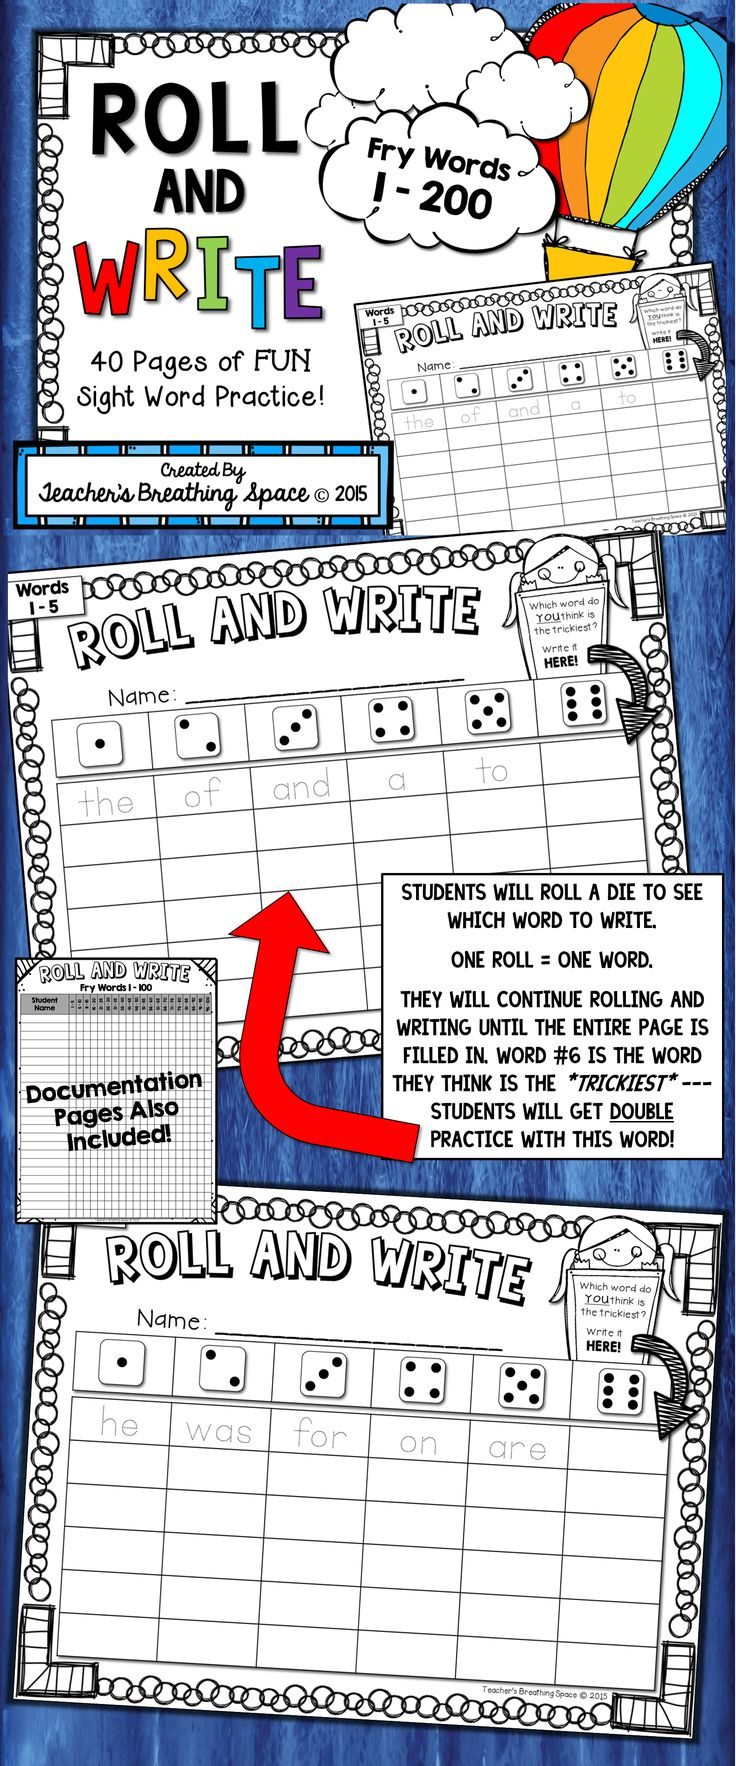 Worksheet Fry Word best 25 fry words ideas on pinterest sight 100 1 200 roll read and write word fluency game